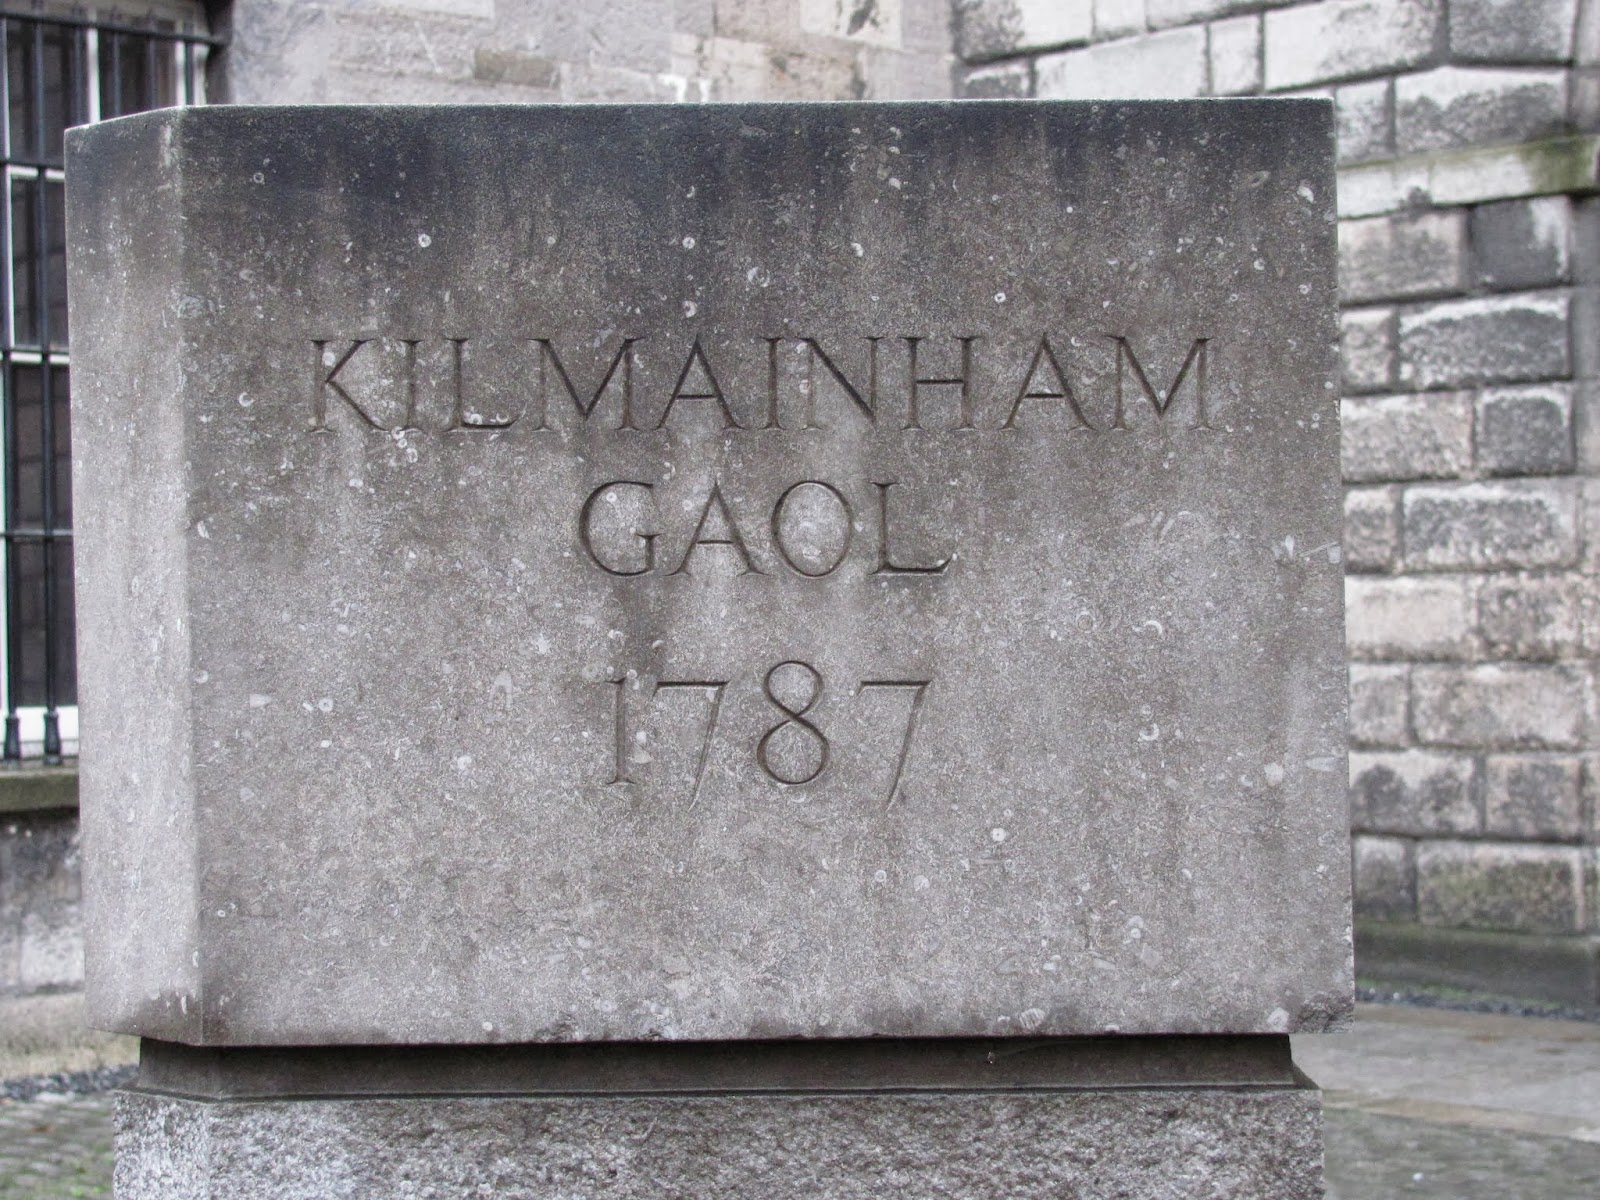 A stone sign reads:  Kilmainham Gaol 1787